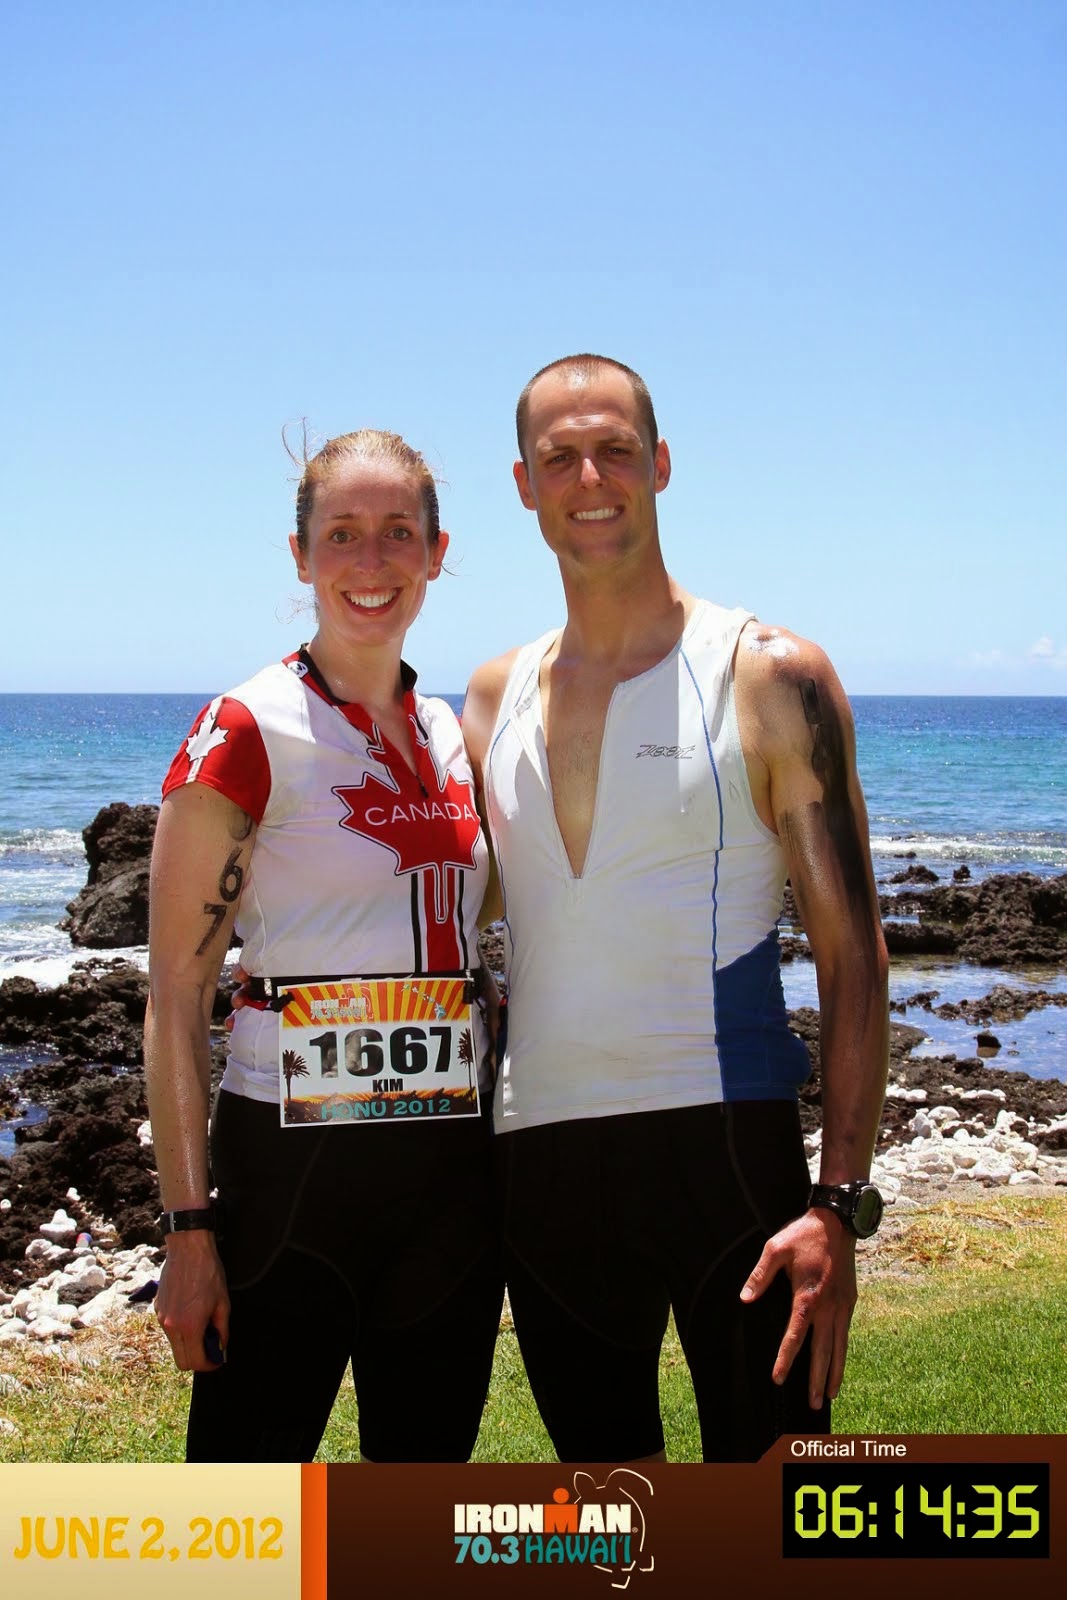 Then we did a HALF IRONMAN in HAWAII as redemption.